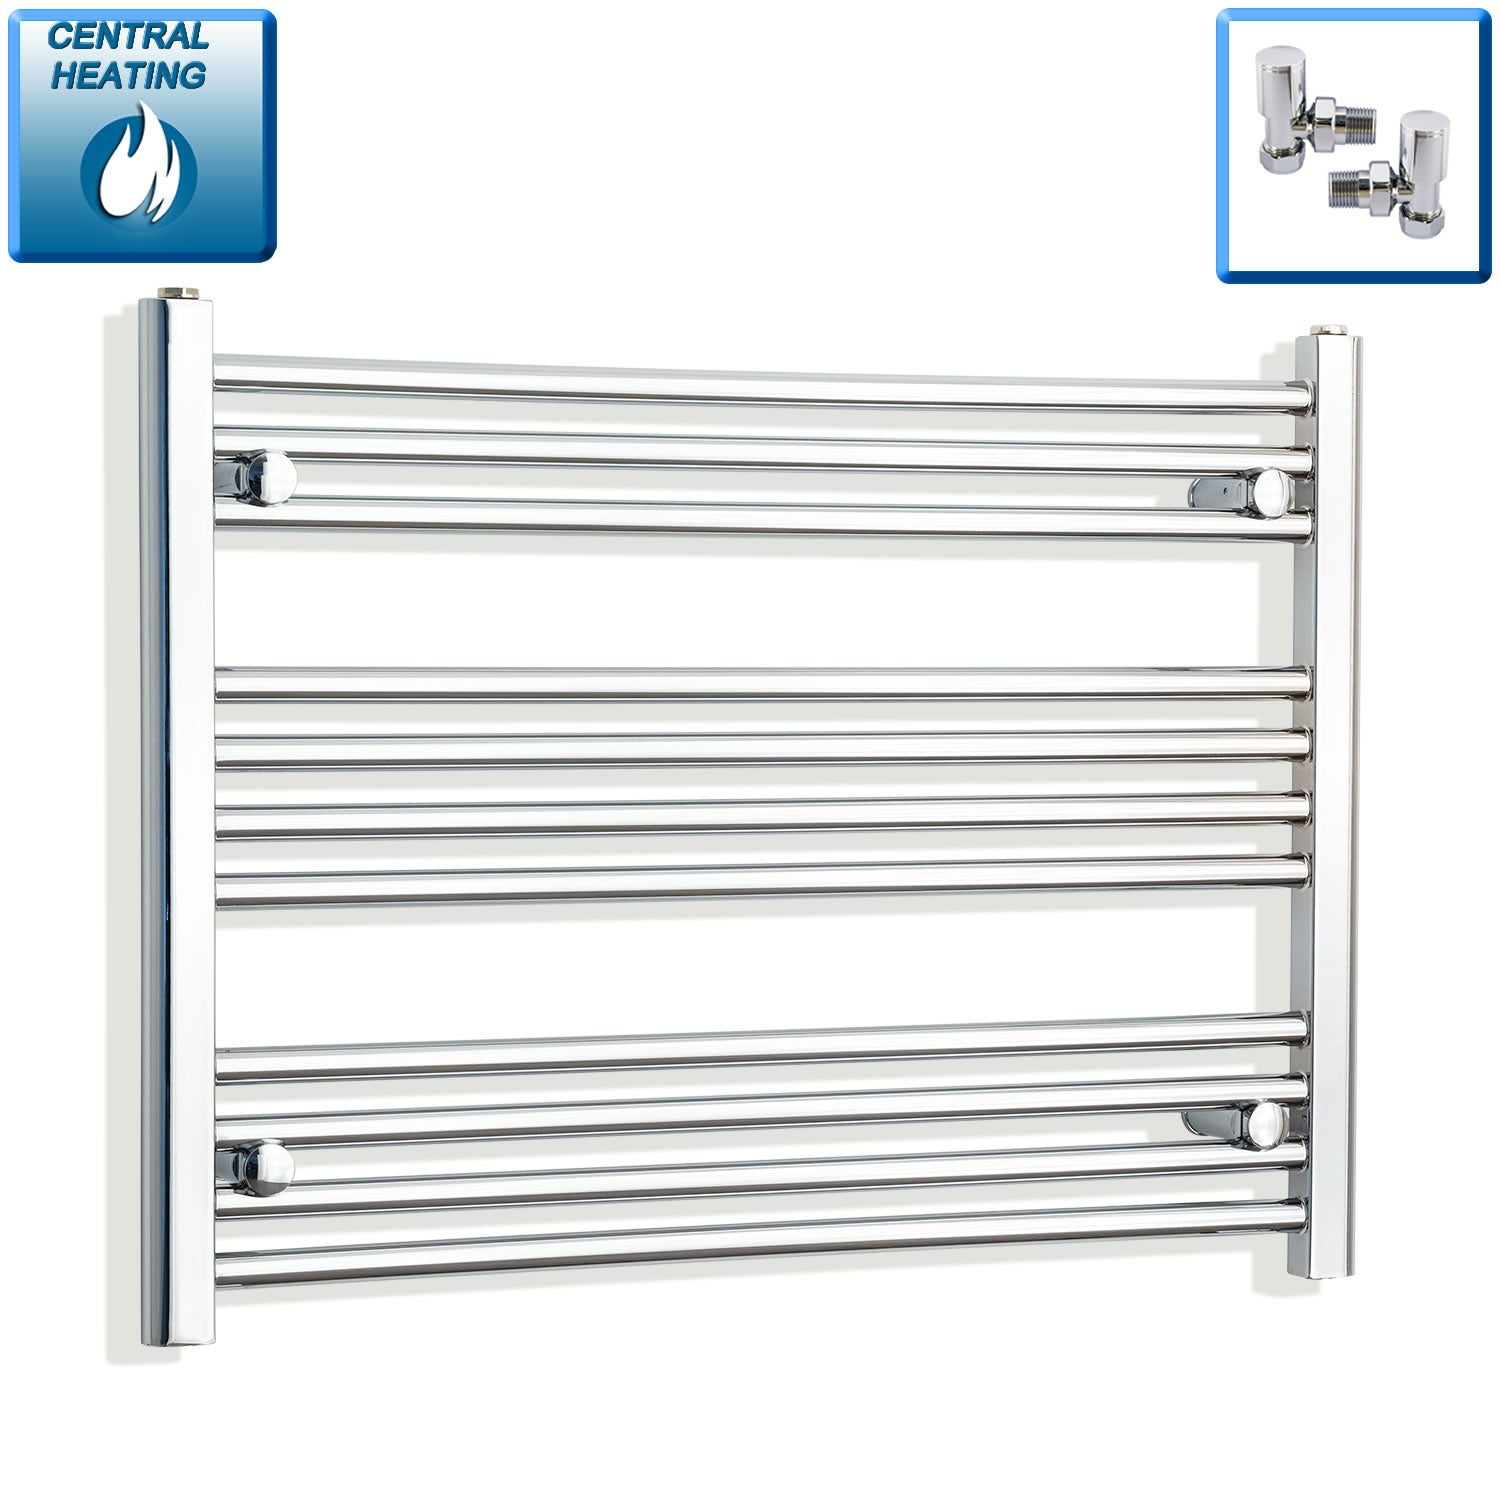 850mm Wide 600mm High Flat Chrome Heated Towel Rail Radiator HTR,With Angled Valve